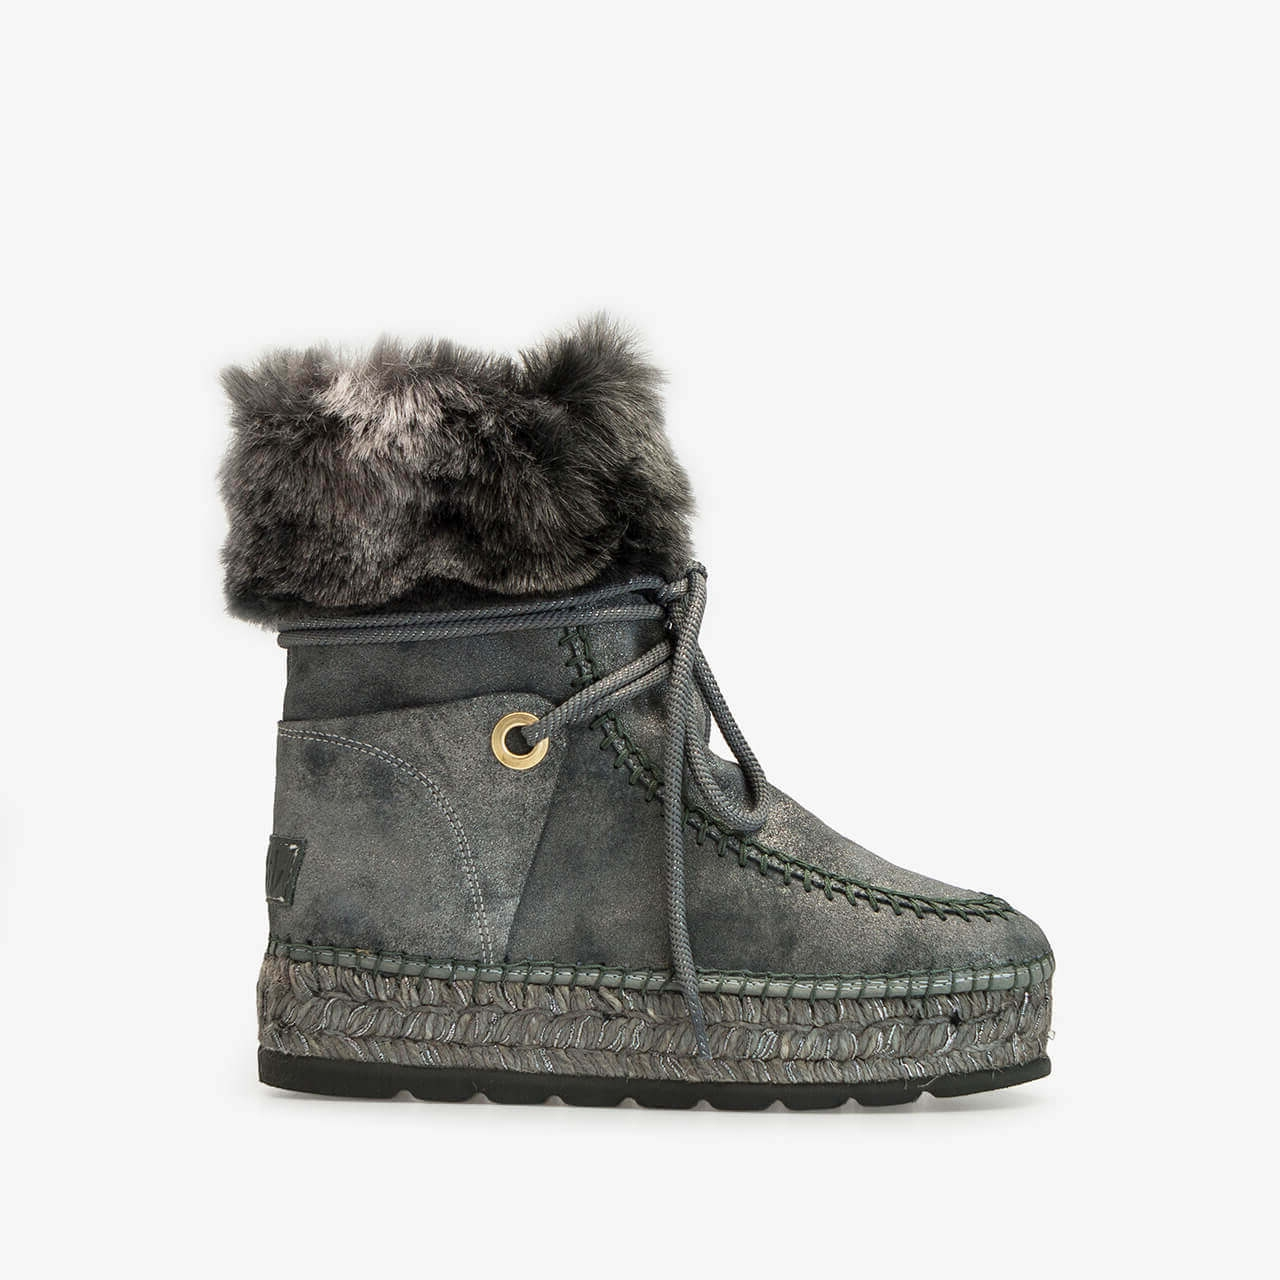 9358bb384f44 Grey Fur Leather Jute Women Laces Boot | Free Shipping | Vidorreta